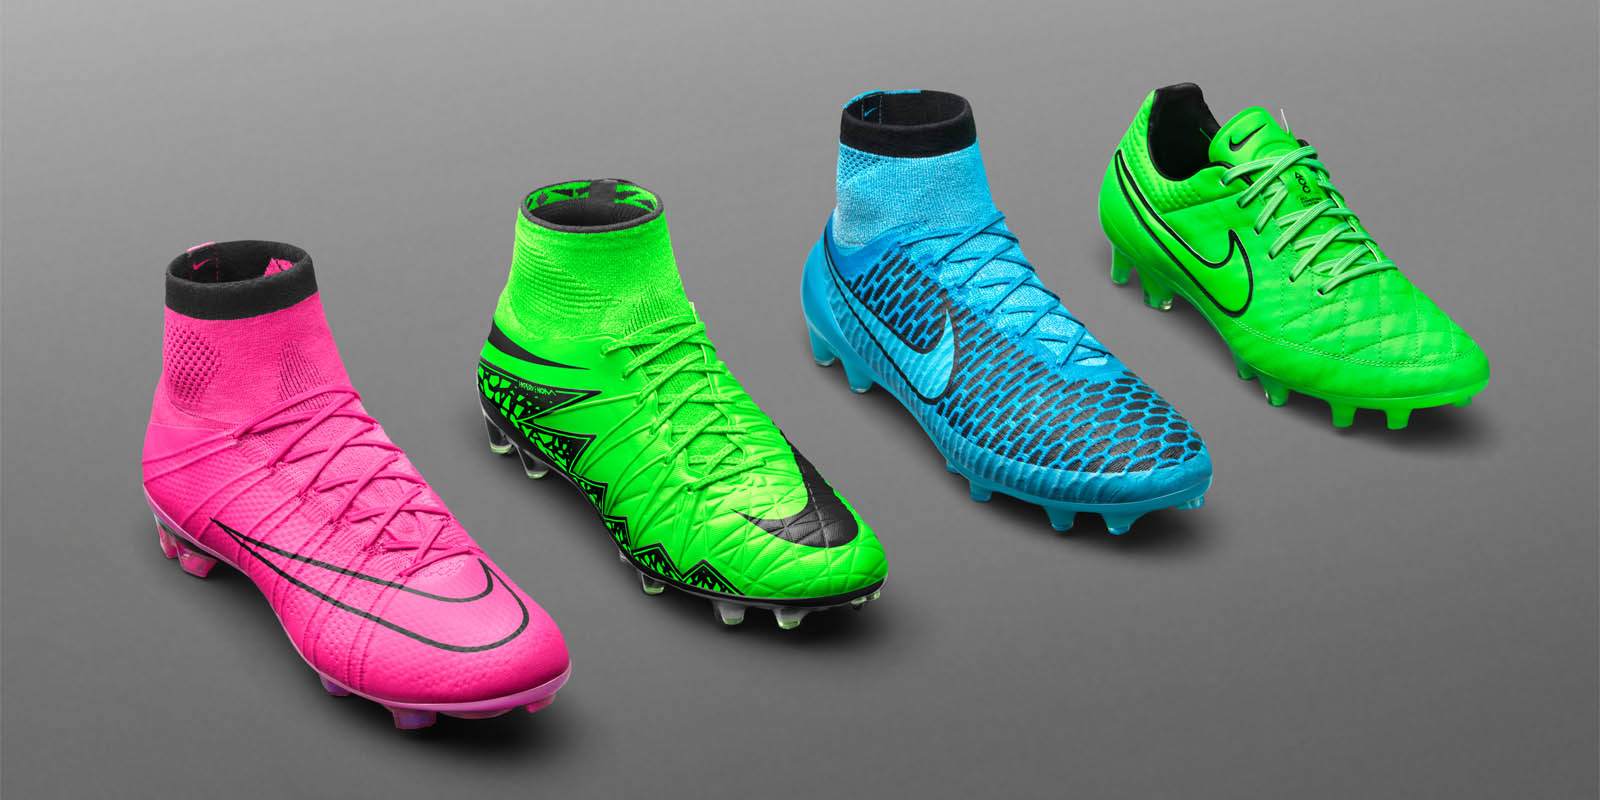 ... Football Boot Summer 2014 Collection Nike Lightning Storm Pack 2015-2016  Boots Collection Released - Footy Headlines ... 968d72a8aefbf